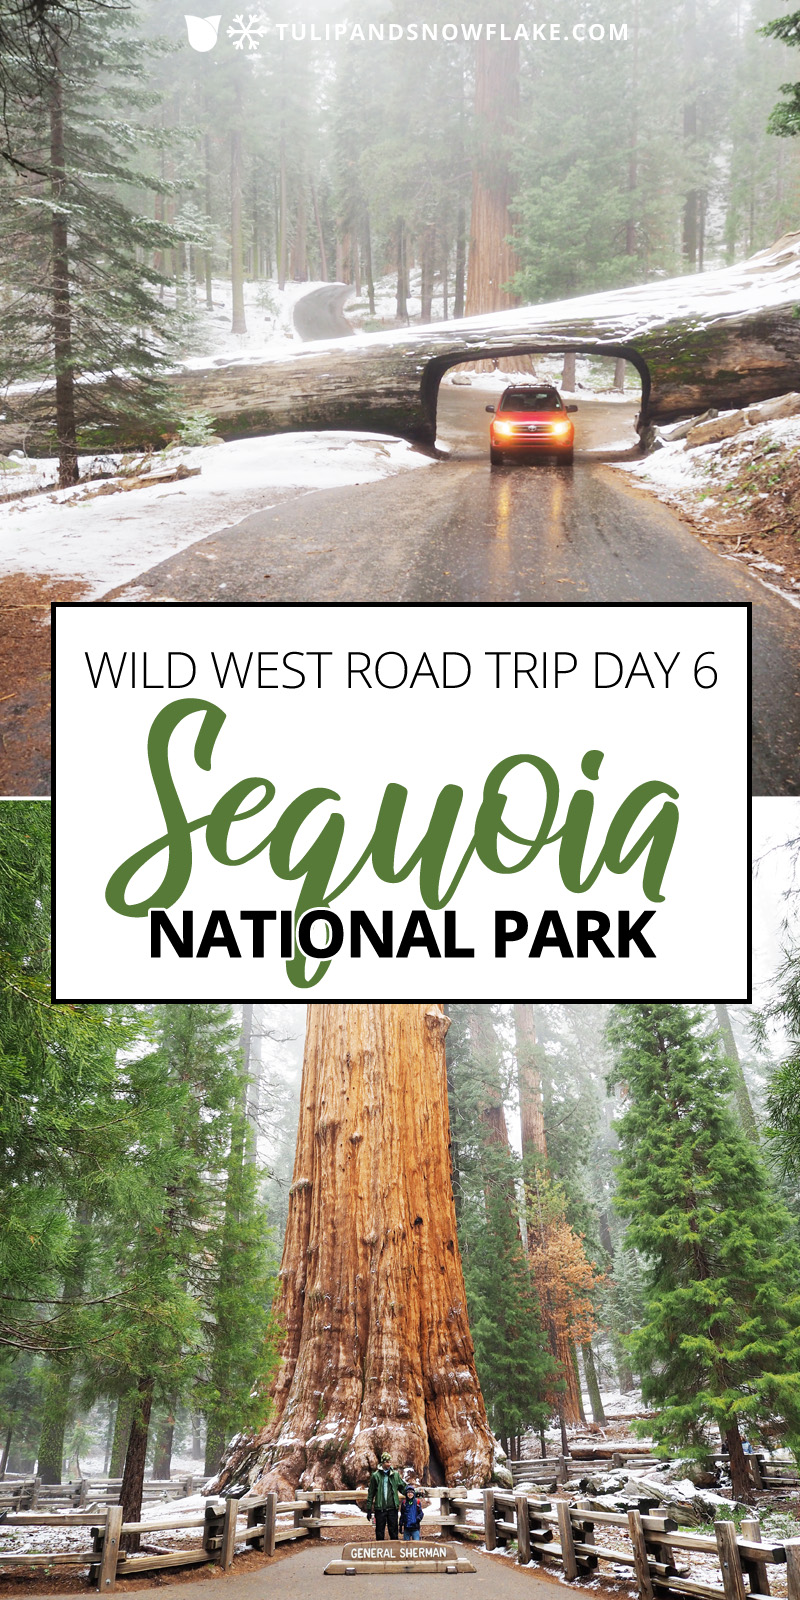 Wild West Road Trip day 6 - Sequoia National Park - Tulip and Snowflake